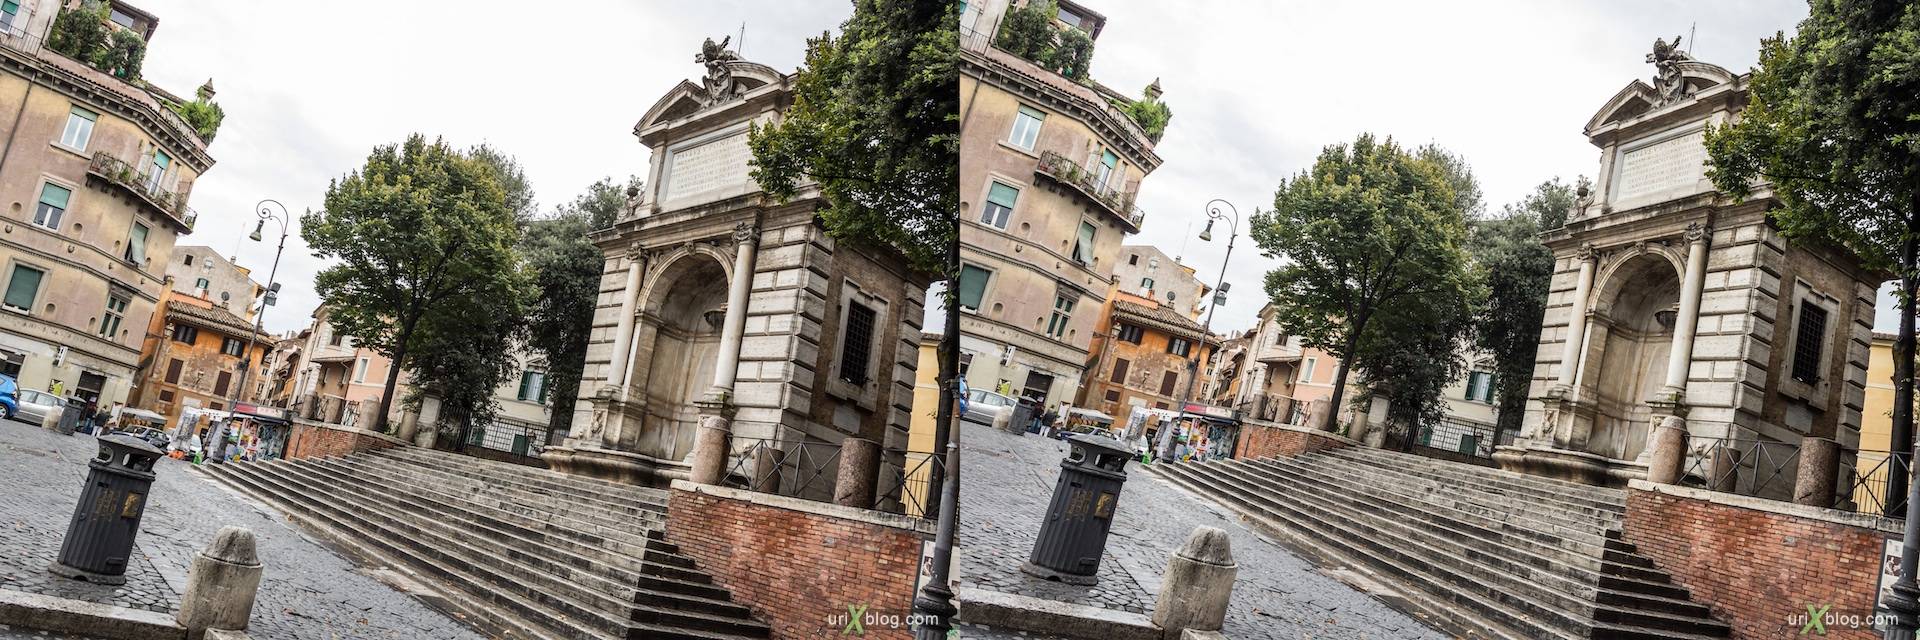 2012, fountain, Piazza Trilussa square, Rome, Italy, Europe, 3D, stereo pair, cross-eyed, crossview, cross view stereo pair